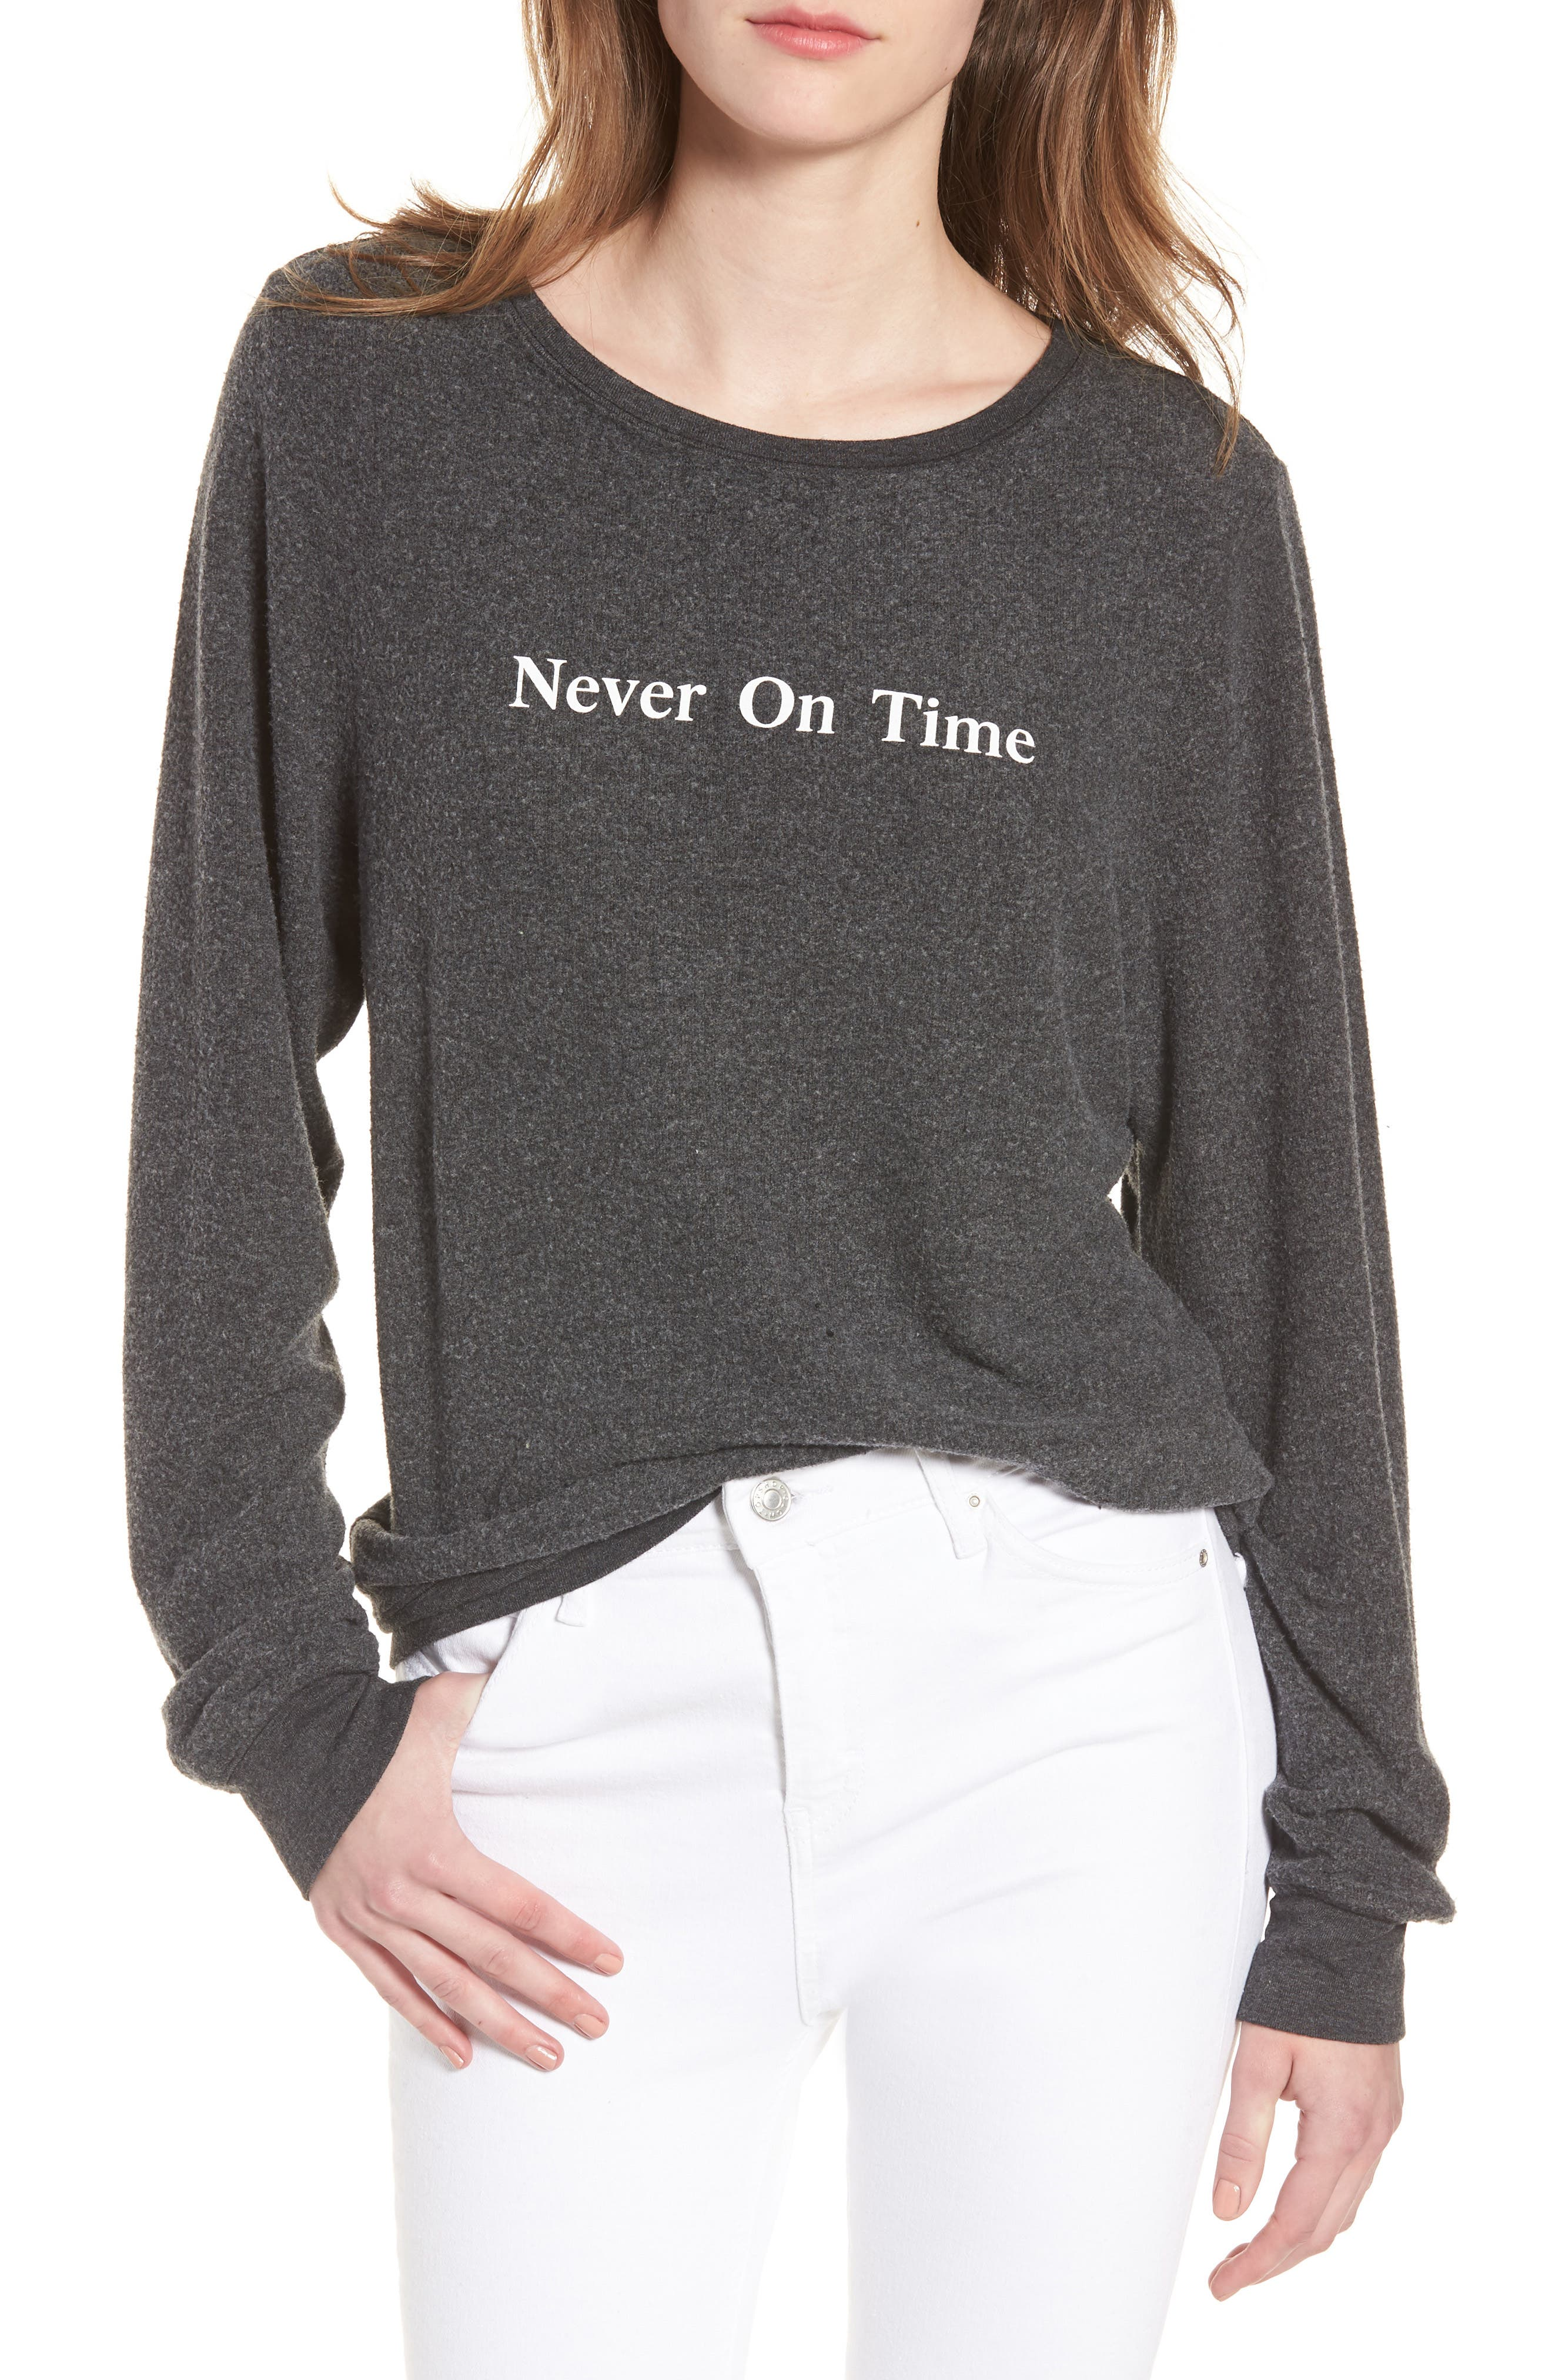 Never on Time Baggy Beach Jumper Pullover,                             Main thumbnail 1, color,                             Black